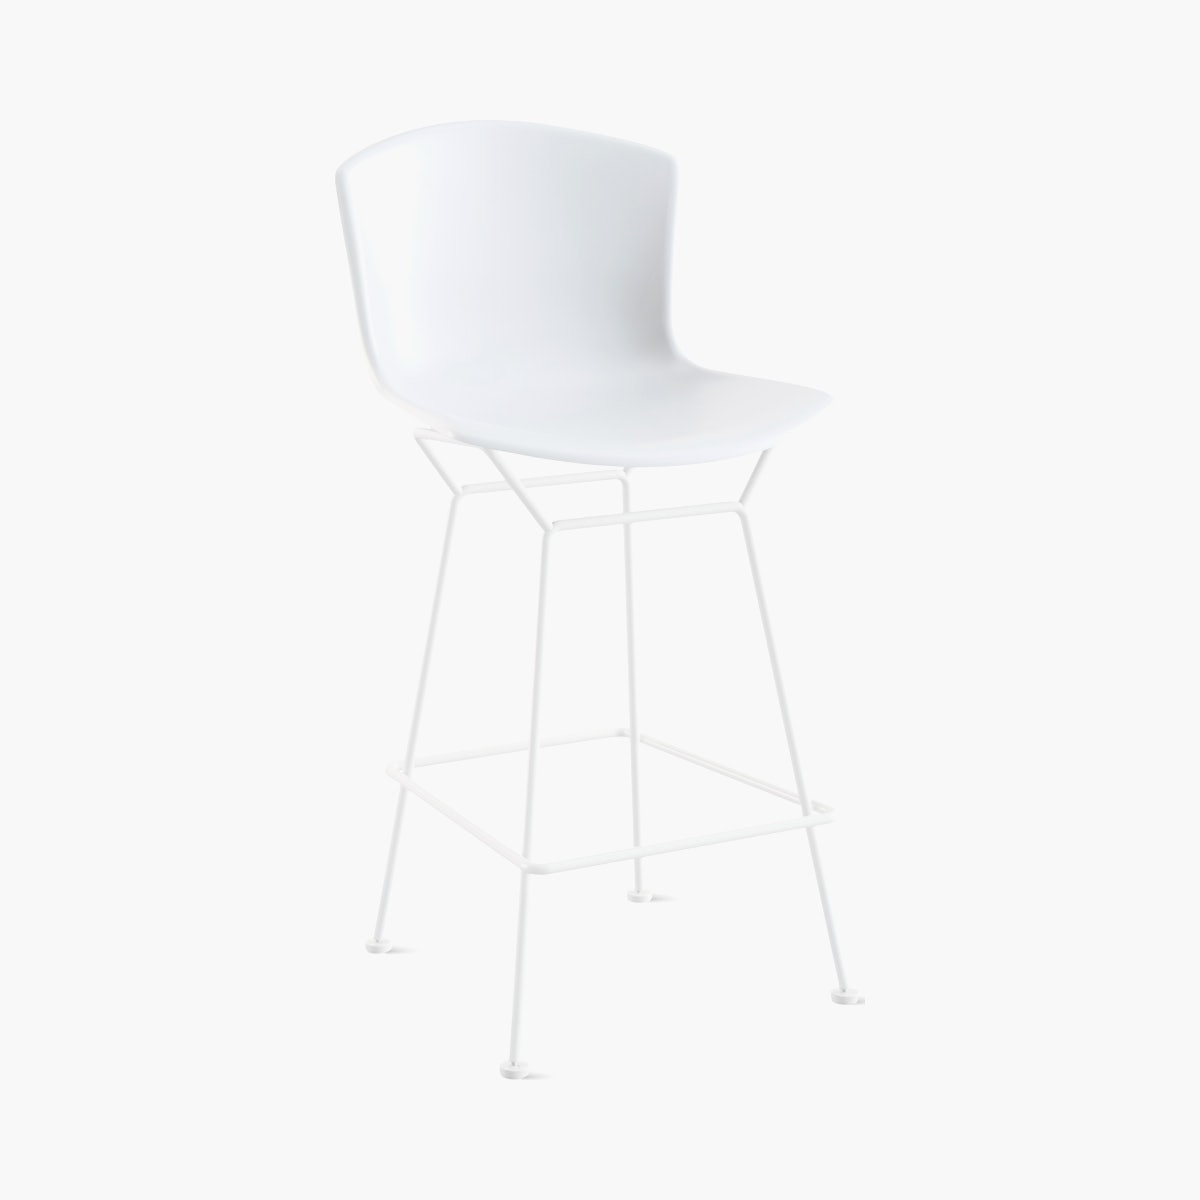 Bertoia Molded Shell Stool